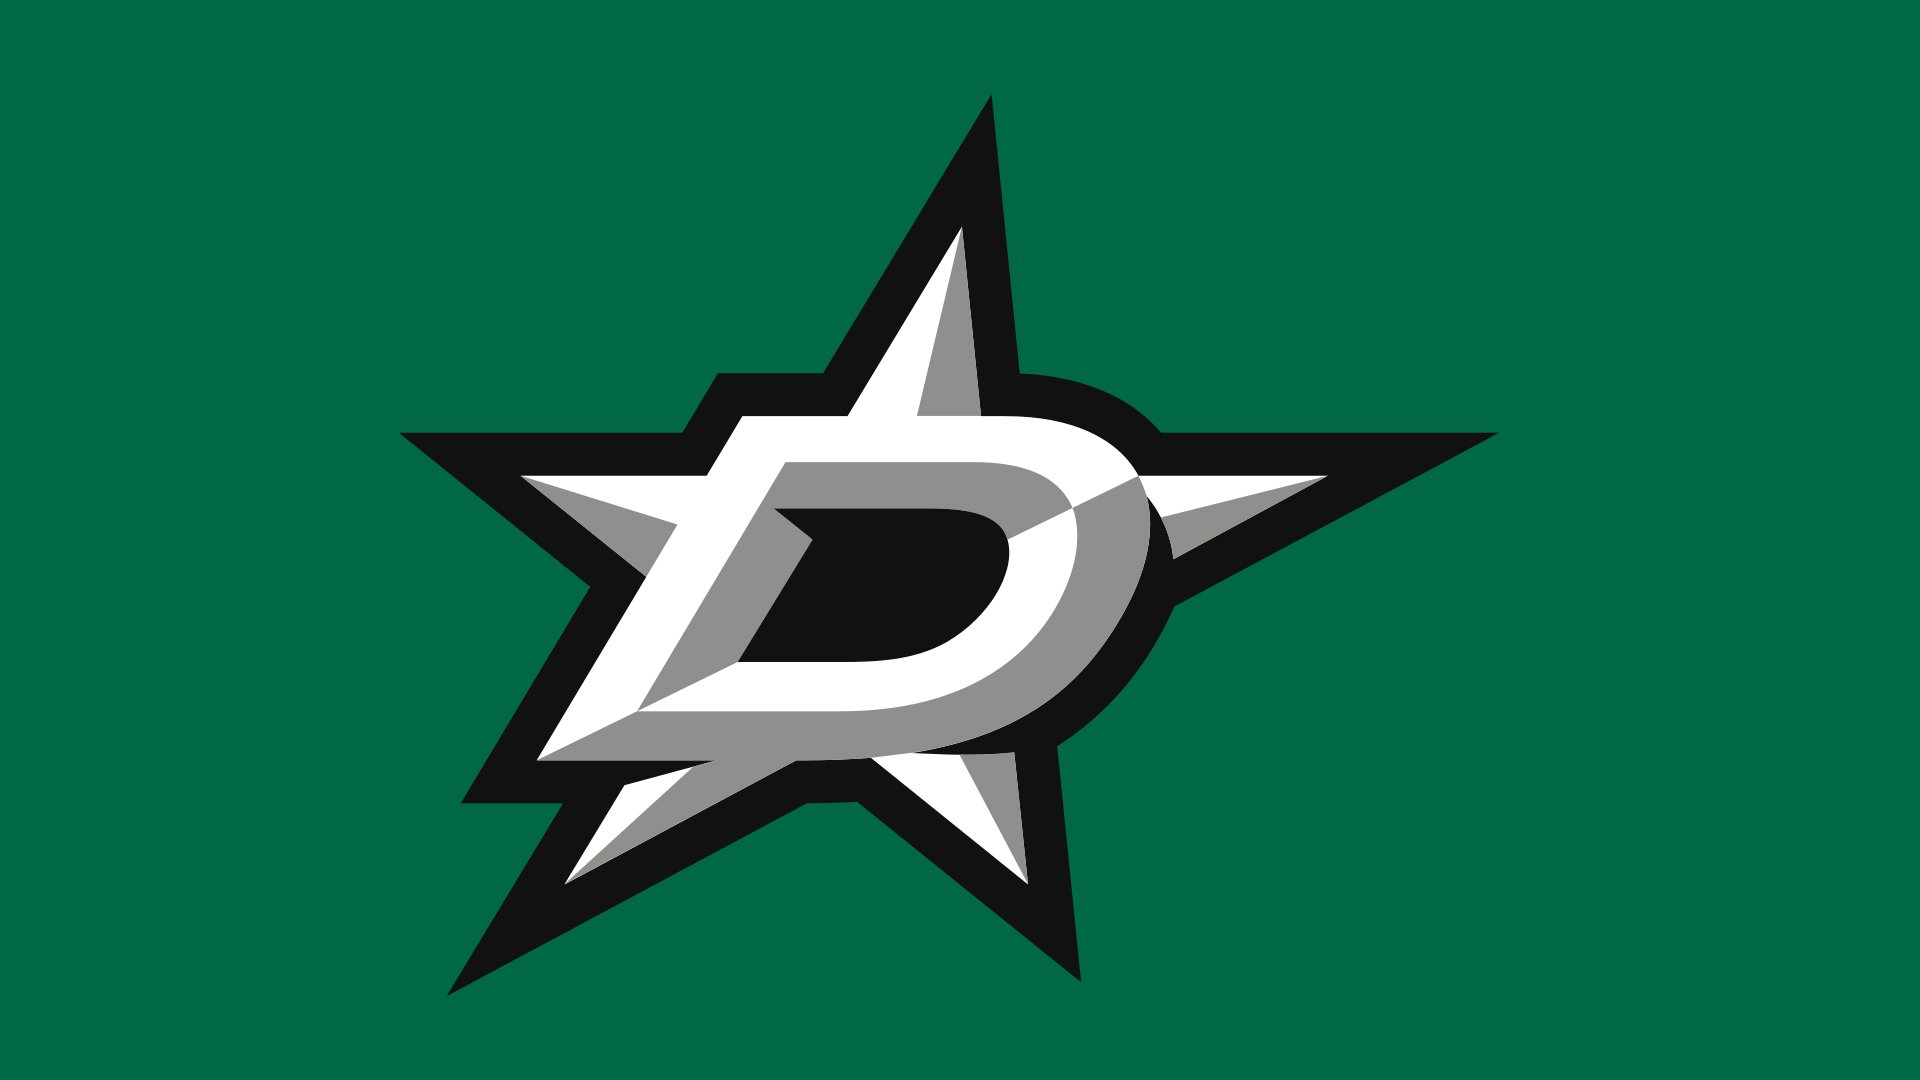 Meaning Dallas Stars logo and symbol | history and evolutionDallas Stars